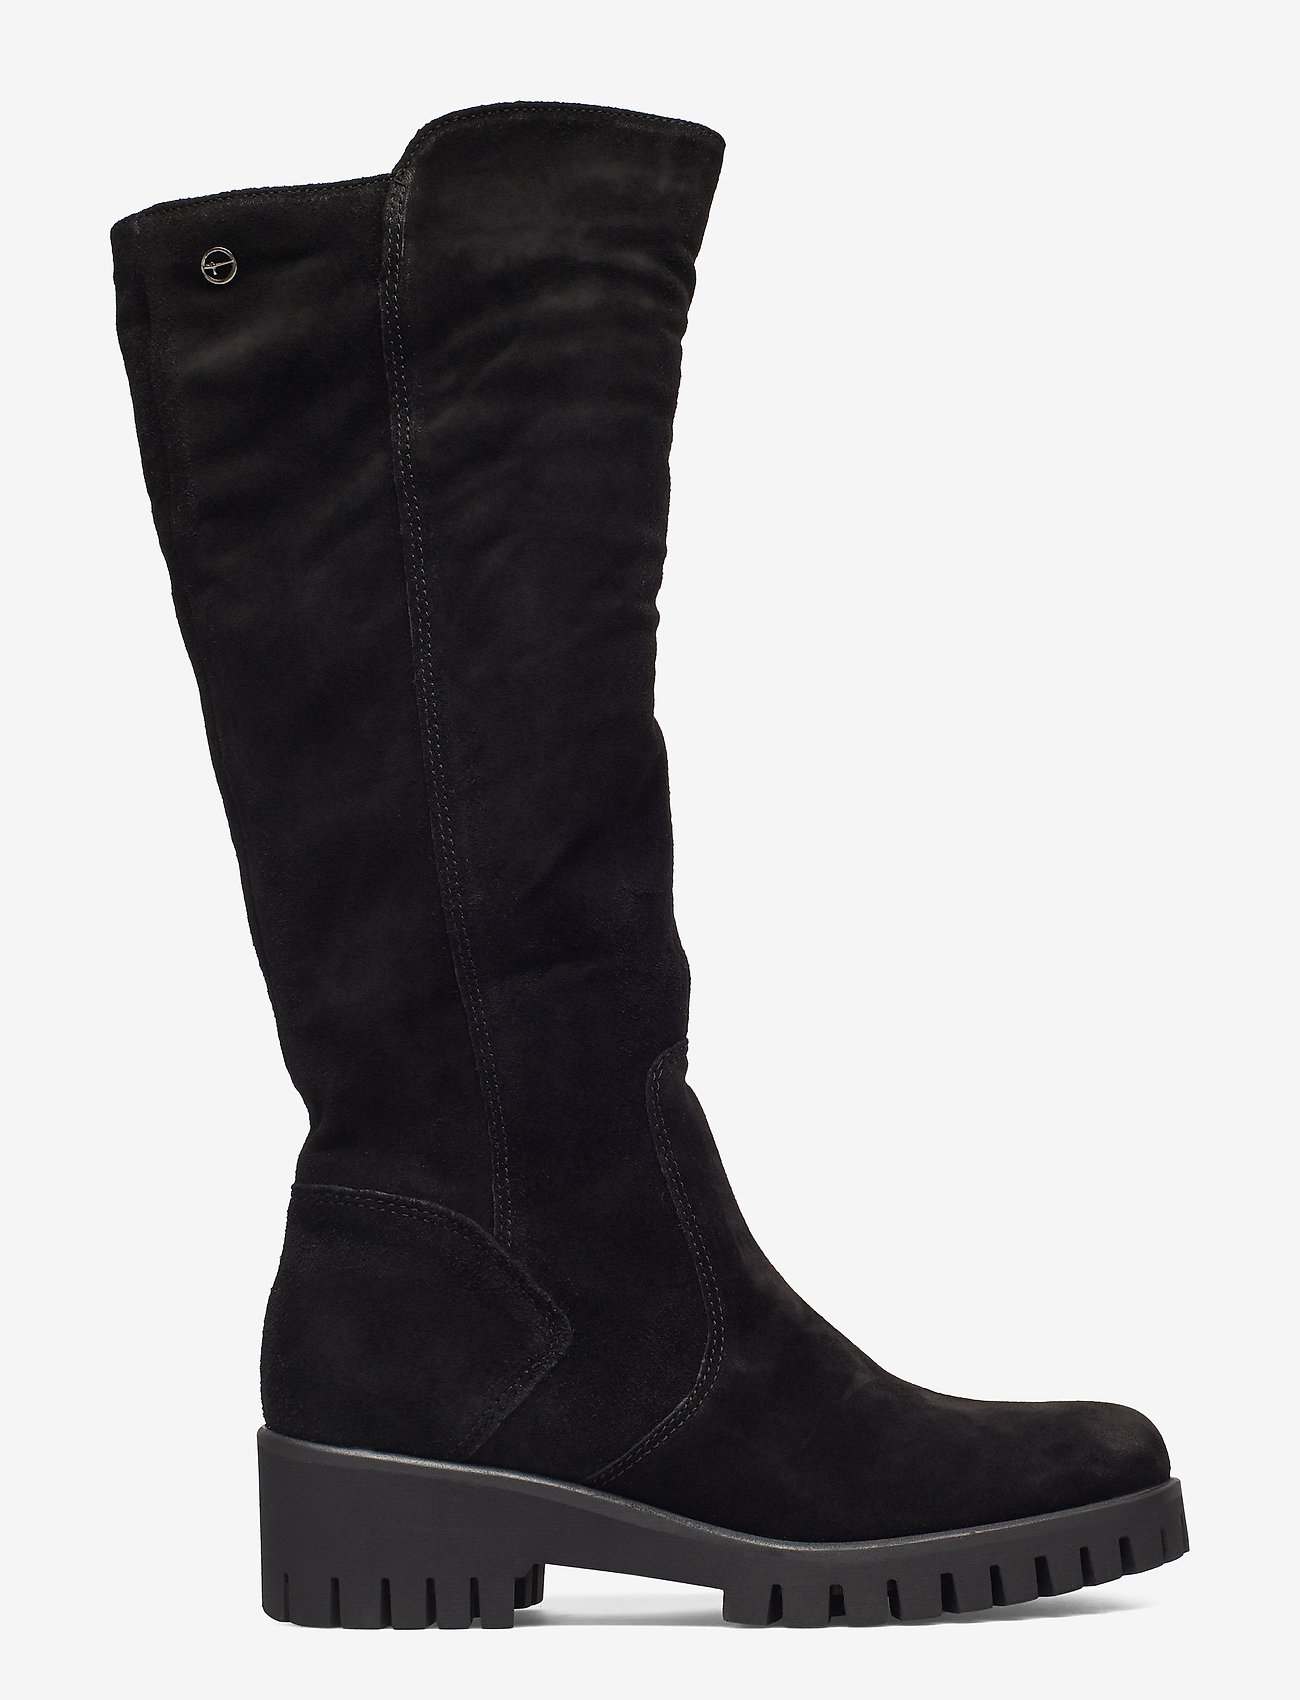 Tamaris - Boots - long boots - black suede - 1